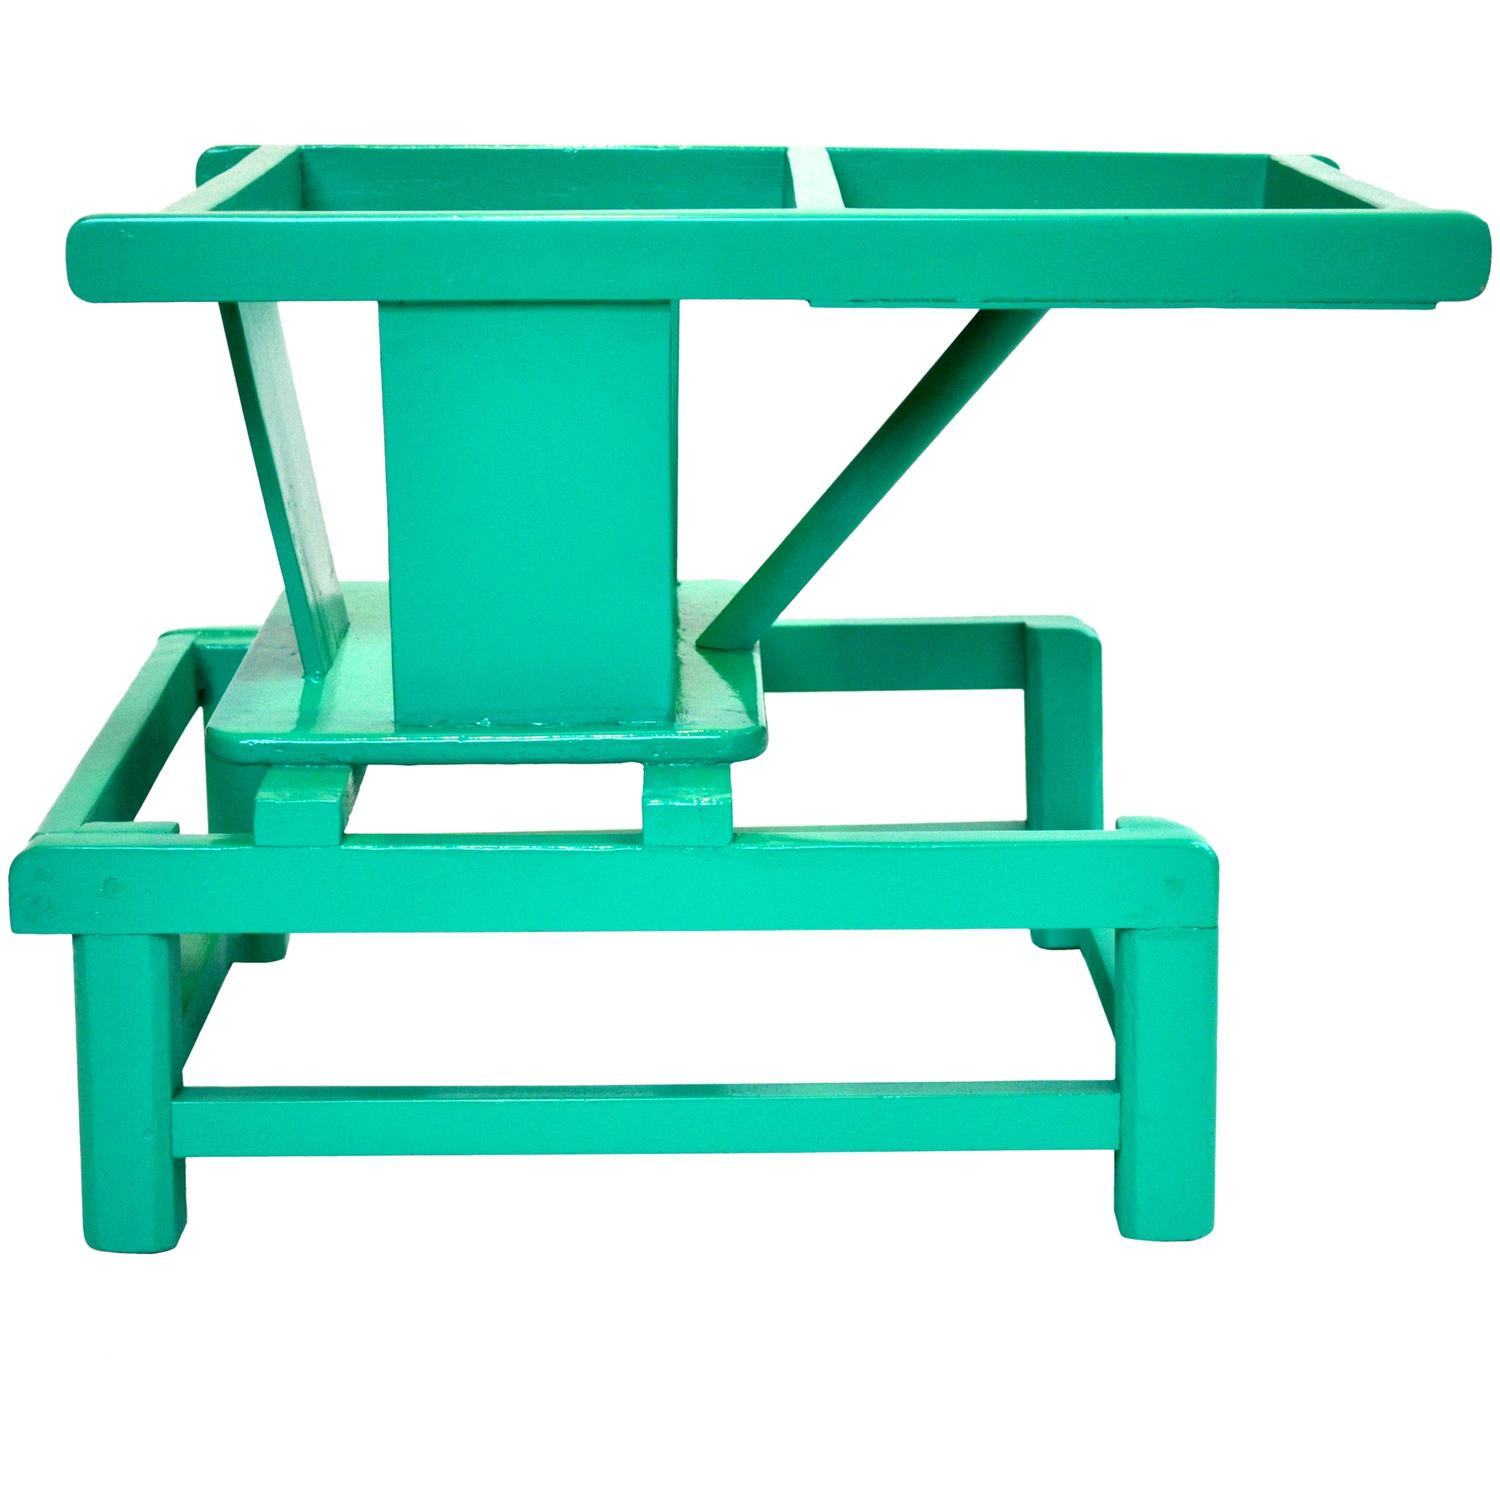 Mid century modern tot play chair in teal lacquered wood for Teal chairs for sale